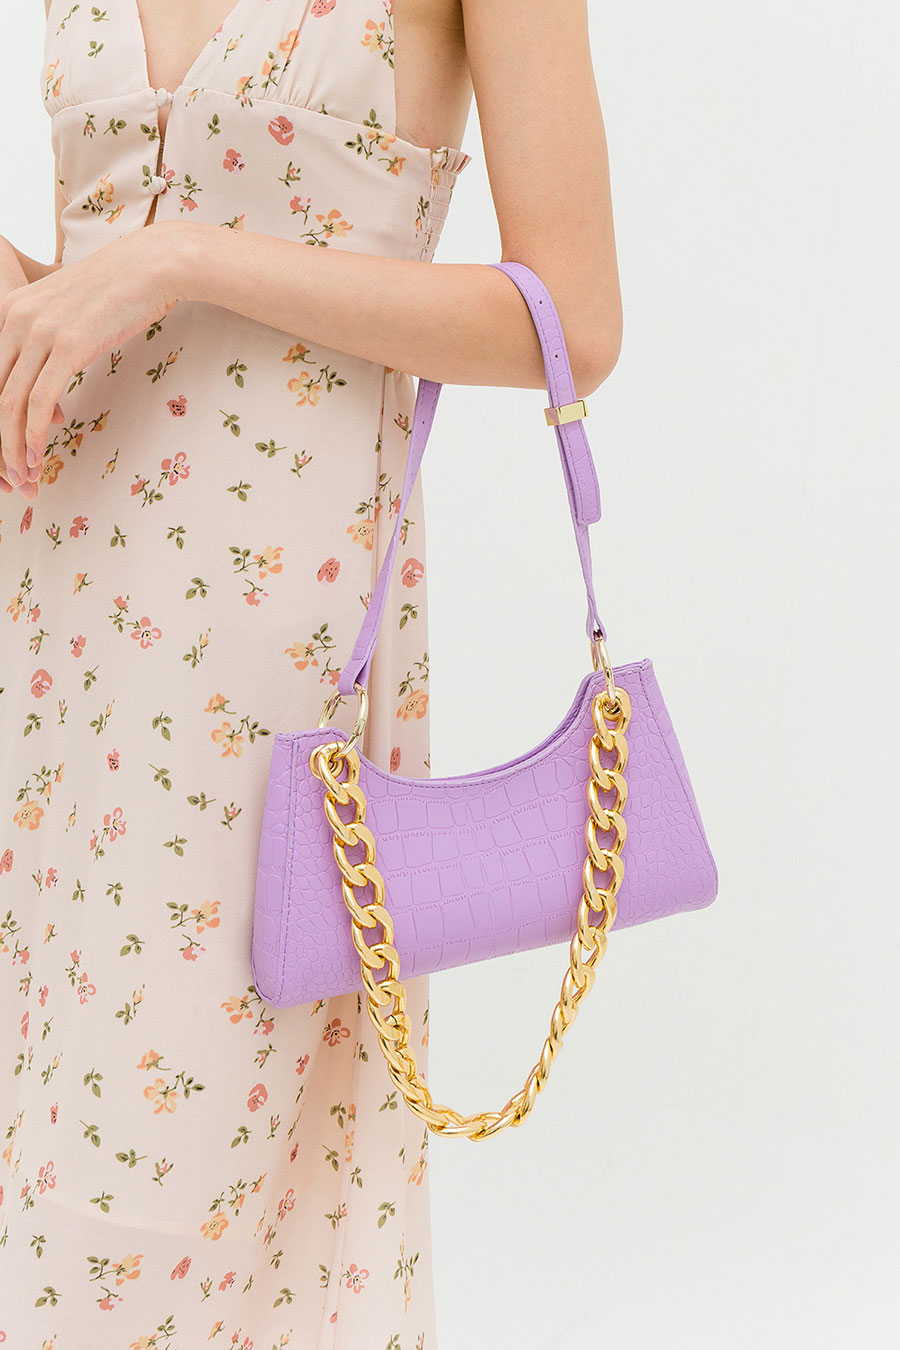 *SALE* RENEE BAG VER 2 - LILAC